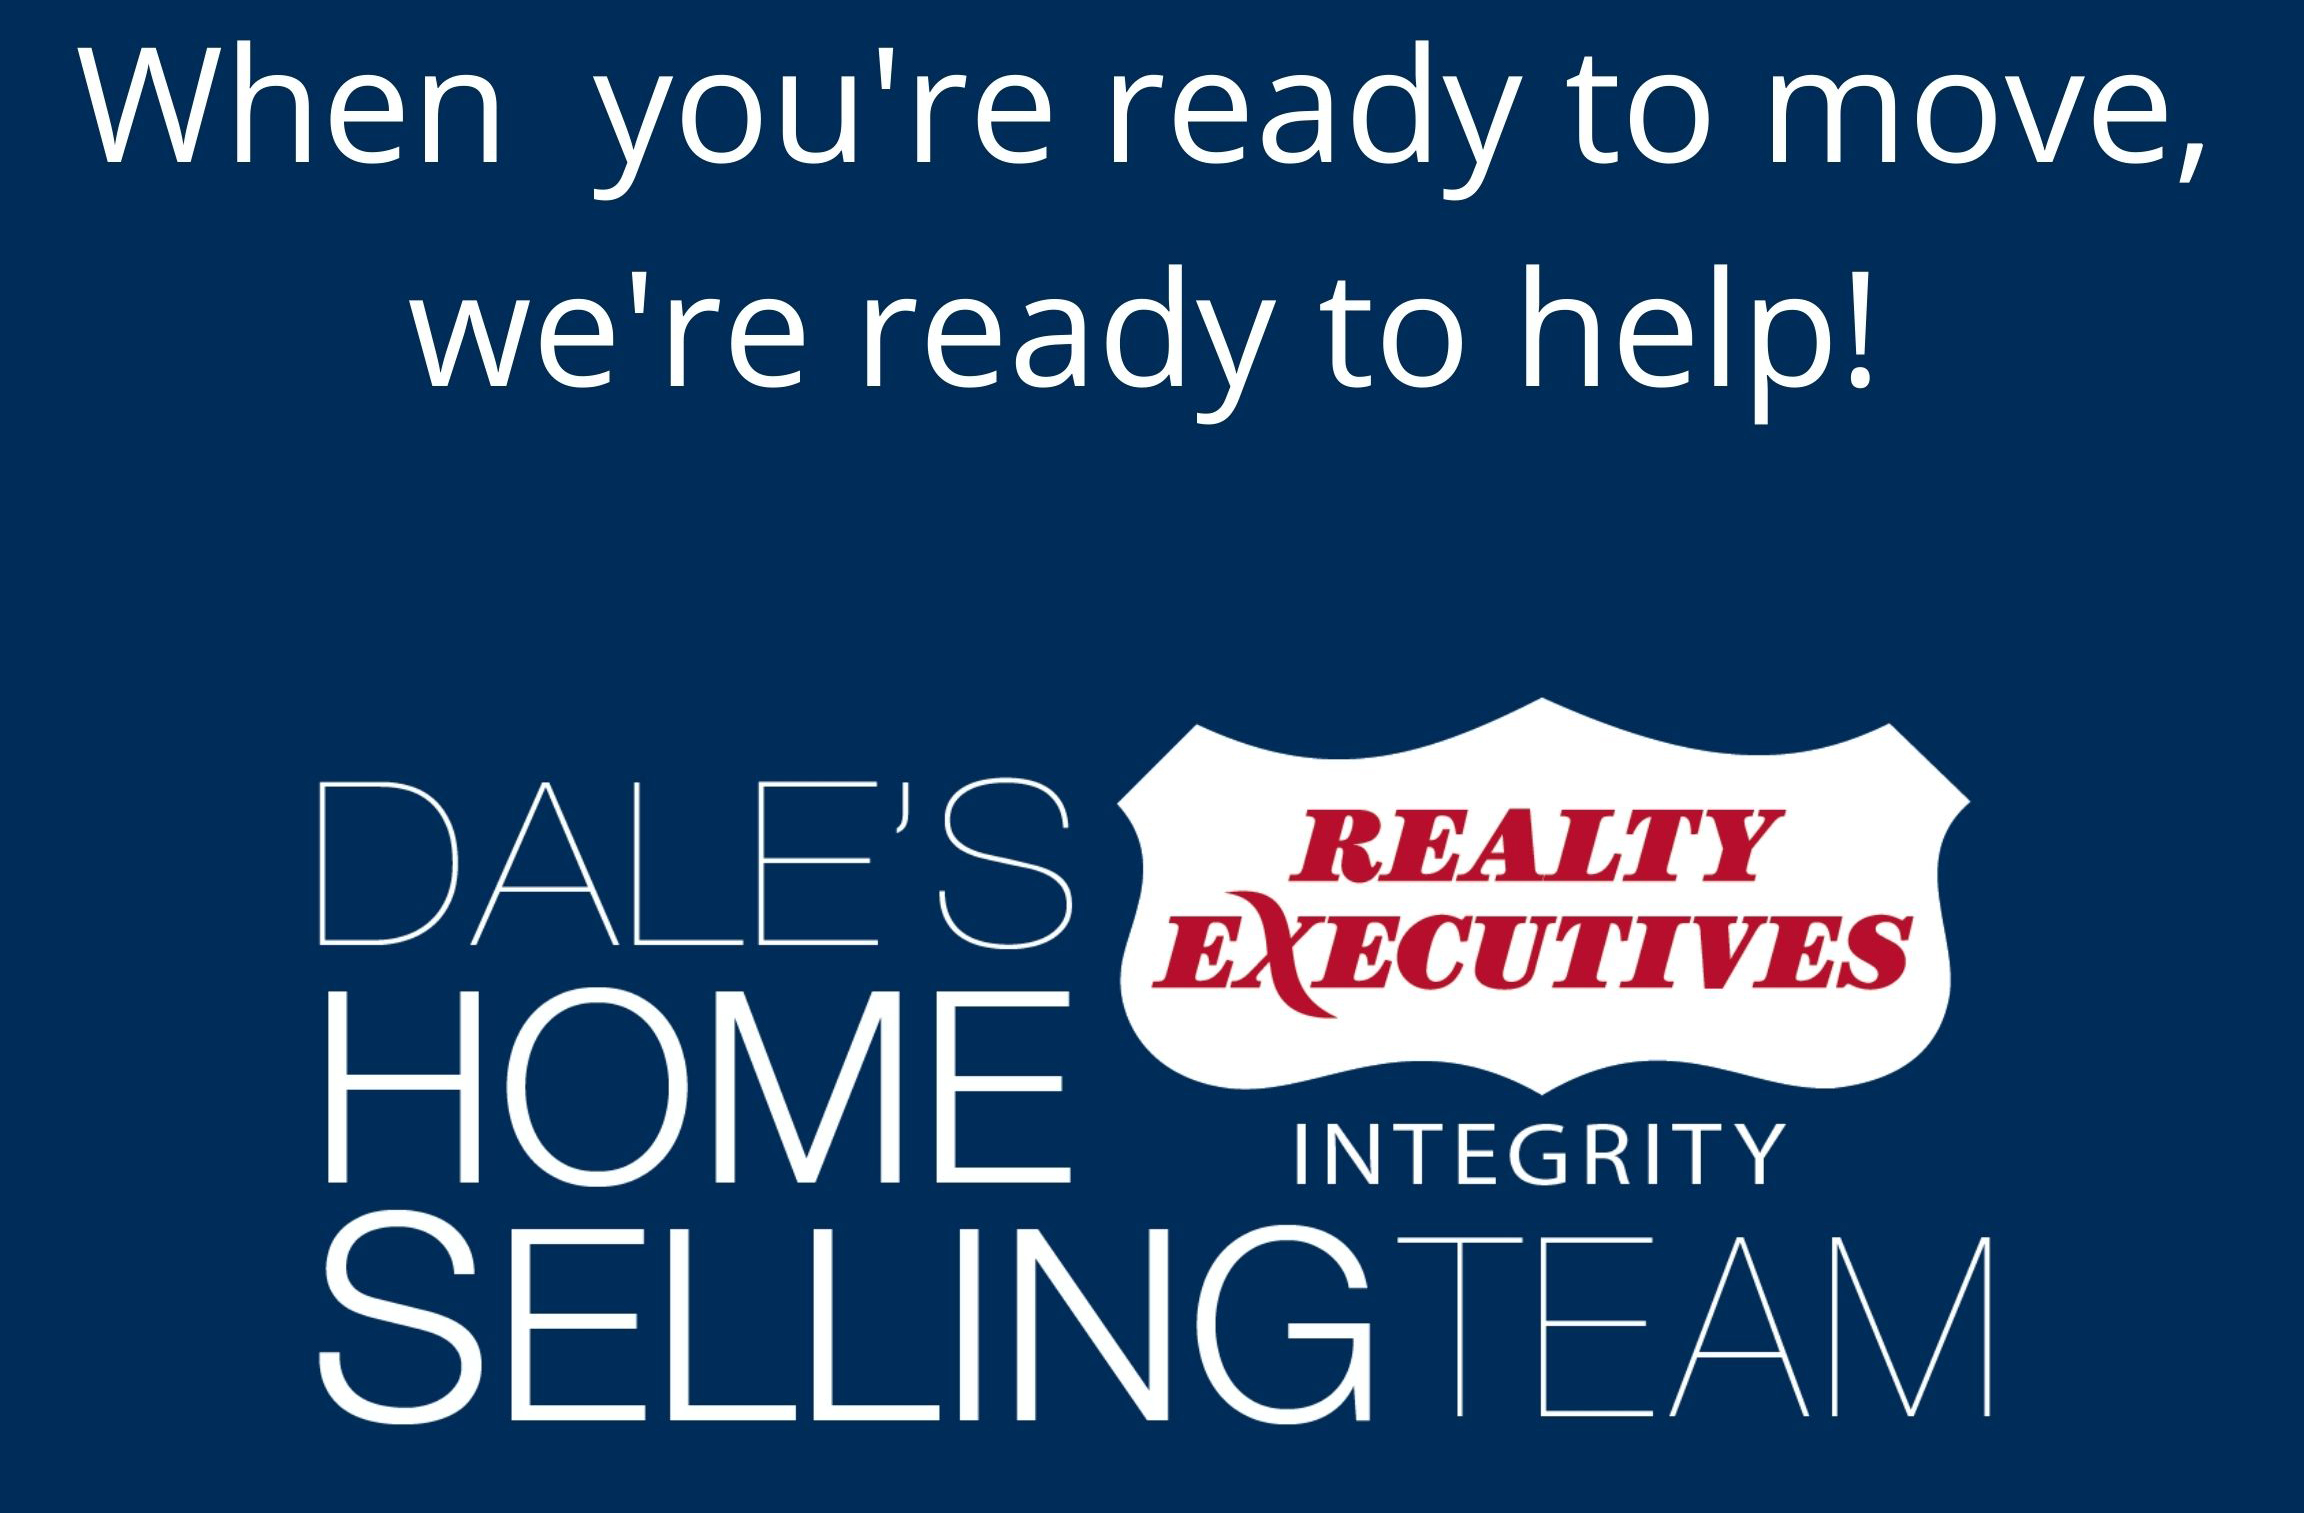 Dale's Home Selling Team  adspaceTL